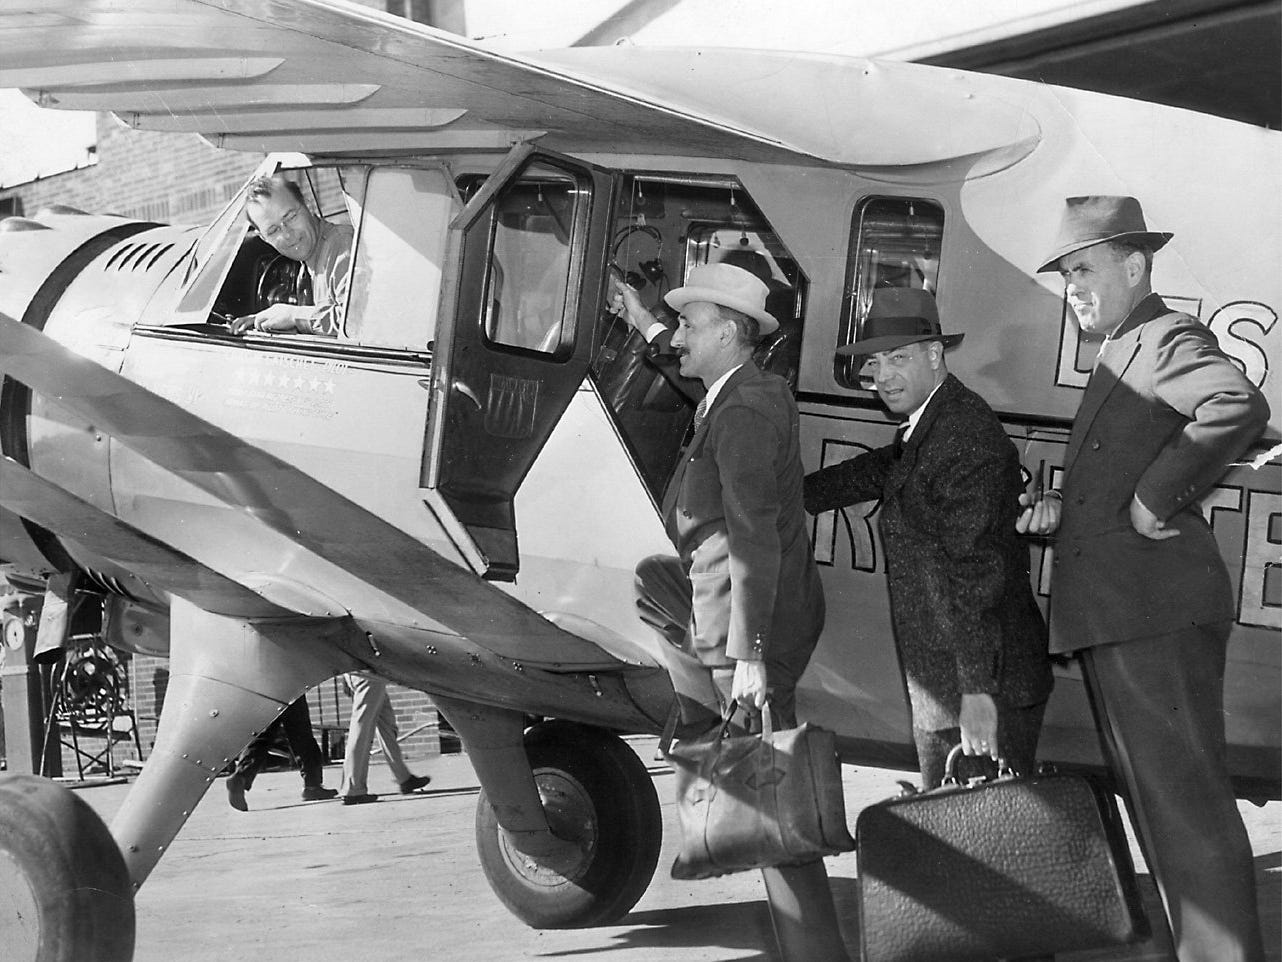 At right, Charles Gatschet aboard Good News VI, between 1936 and 1939.